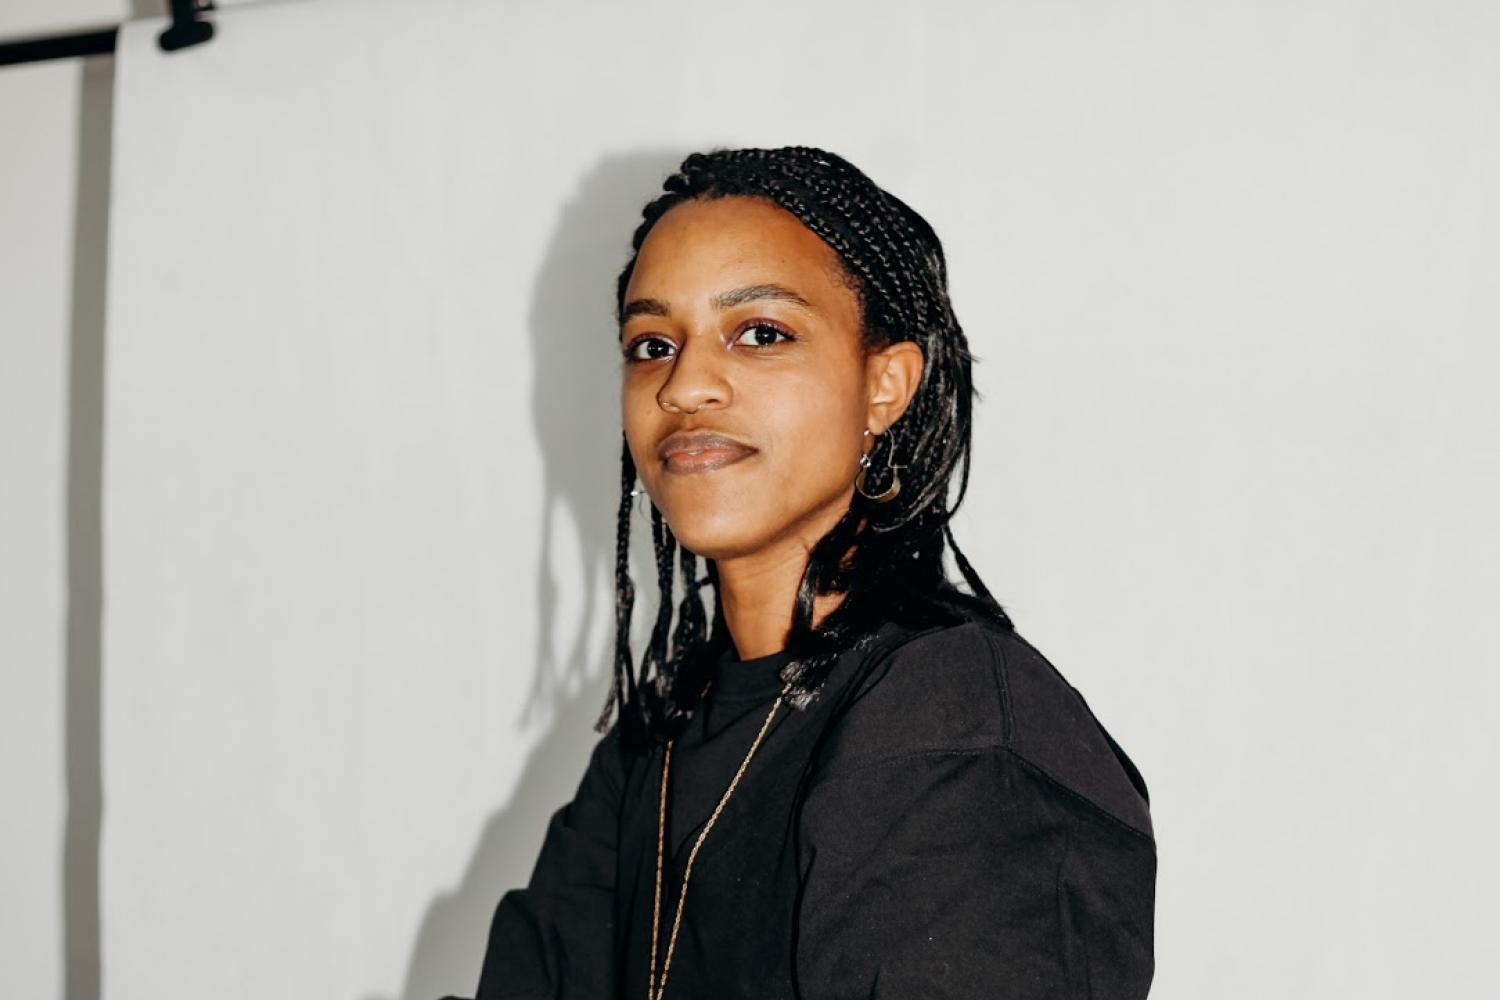 Artist Felicia Blow sits on a white chair in an all-white room, legs crossed and arms resting atop her legs. She wears a black bomber and black wide legged cropped pants with gold jewelry, and she smiles subtly at the camera, her braids tucked behind her ears.